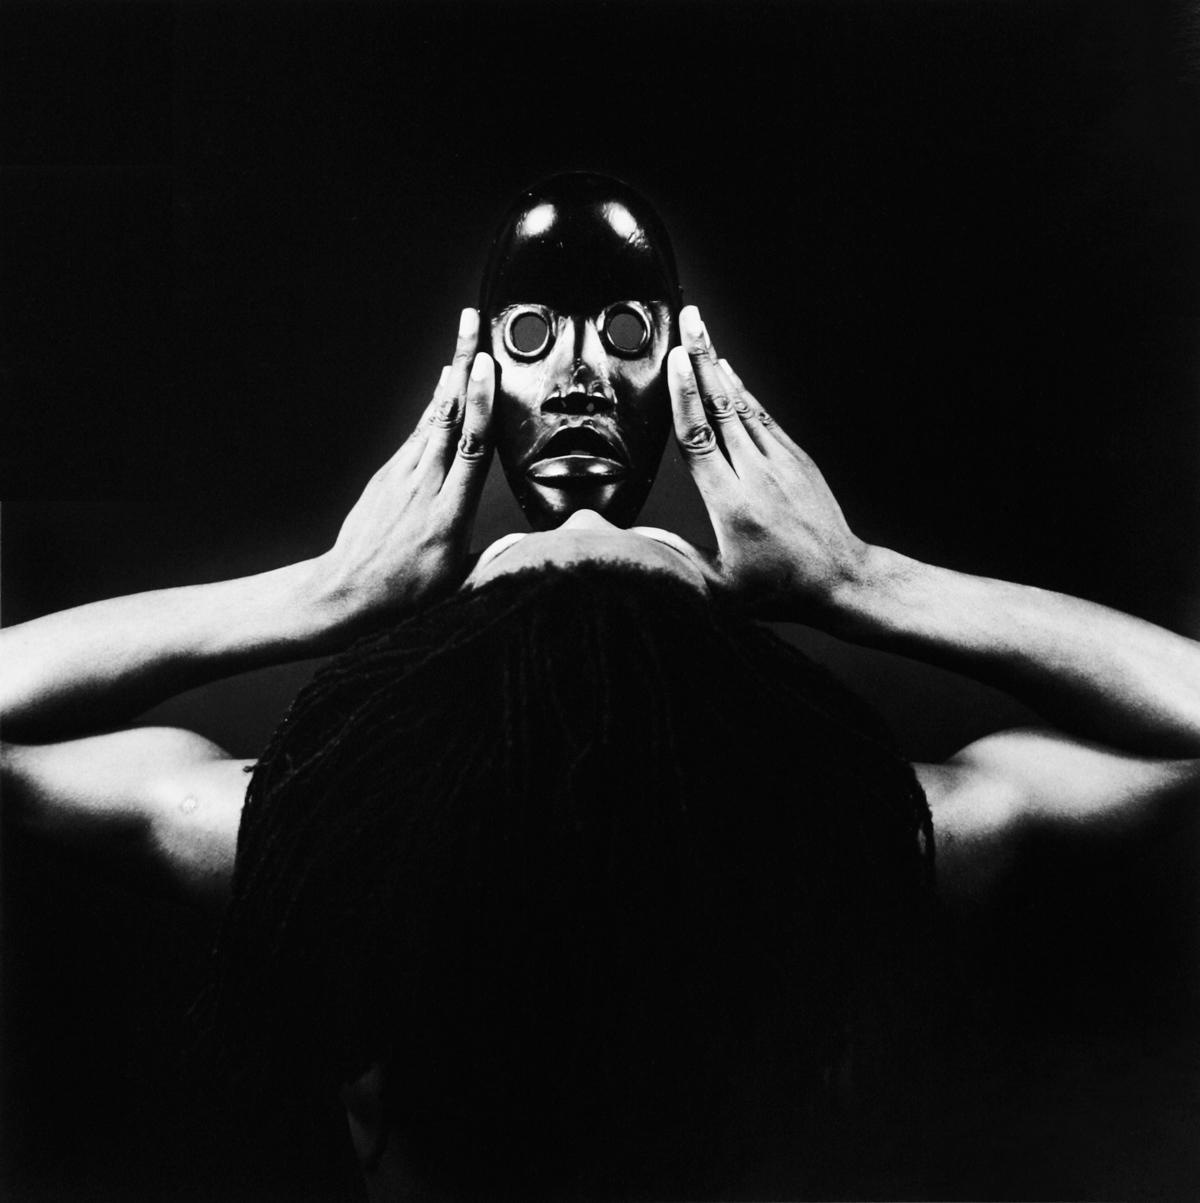 Rotimi Fani-Kayodé (Nigerian-British, 1955–1989), Dan Mask, 1989. Silver gelatin print, hand-printed, edition 3/10. Art Acquisitions Fund 2012-7-1